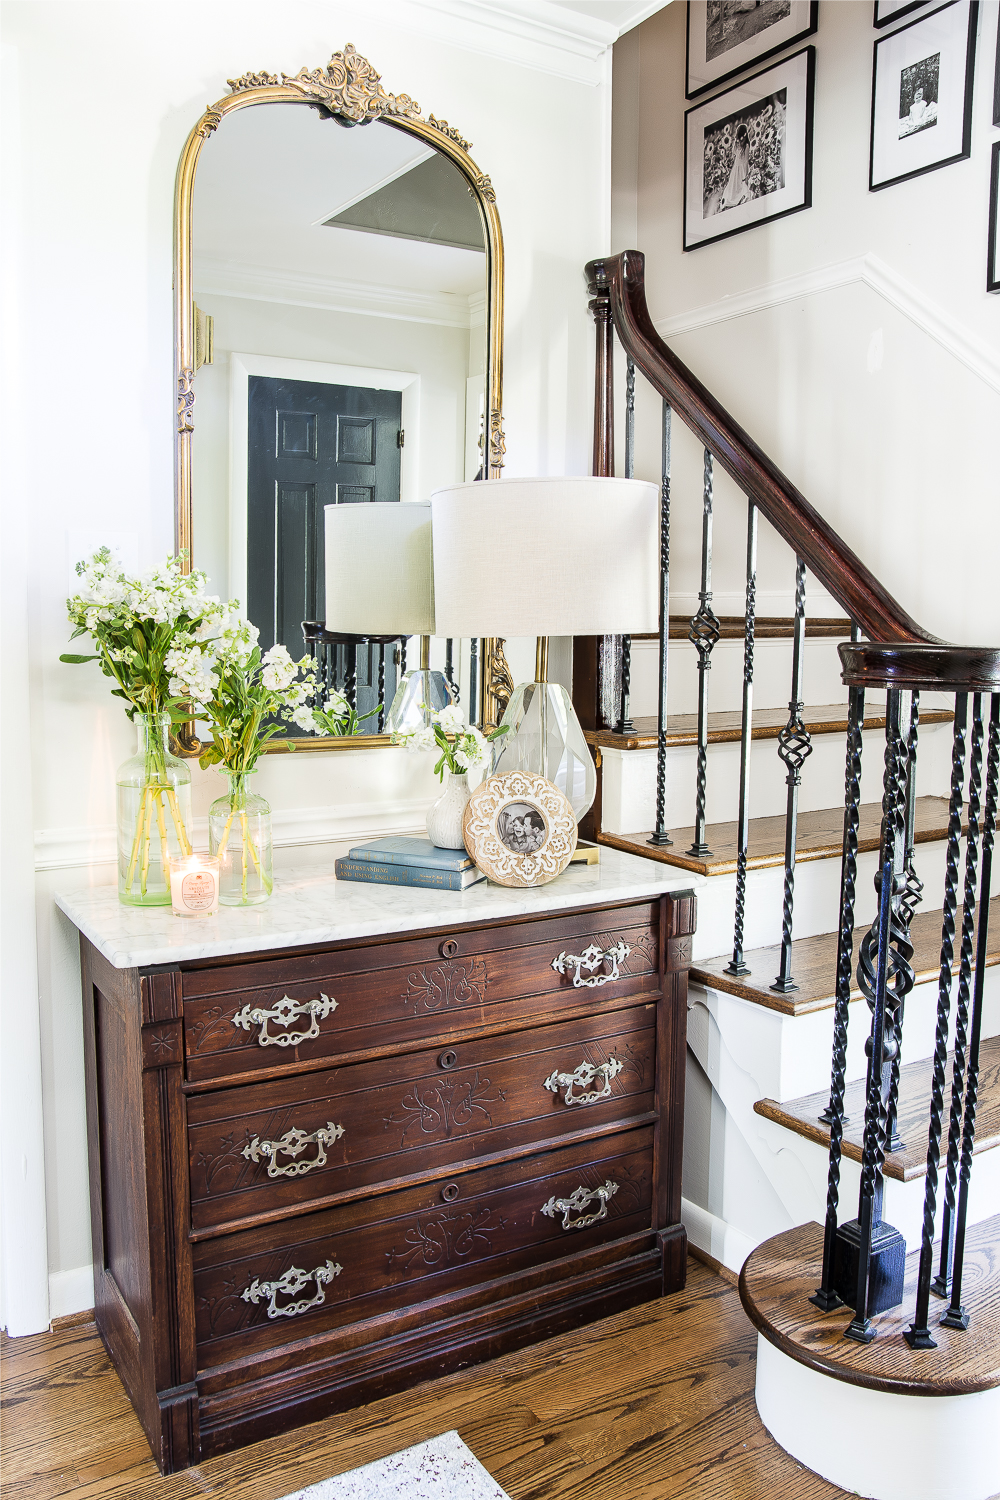 This gorgeous farmhouse style entryway set up is quaint and stylish